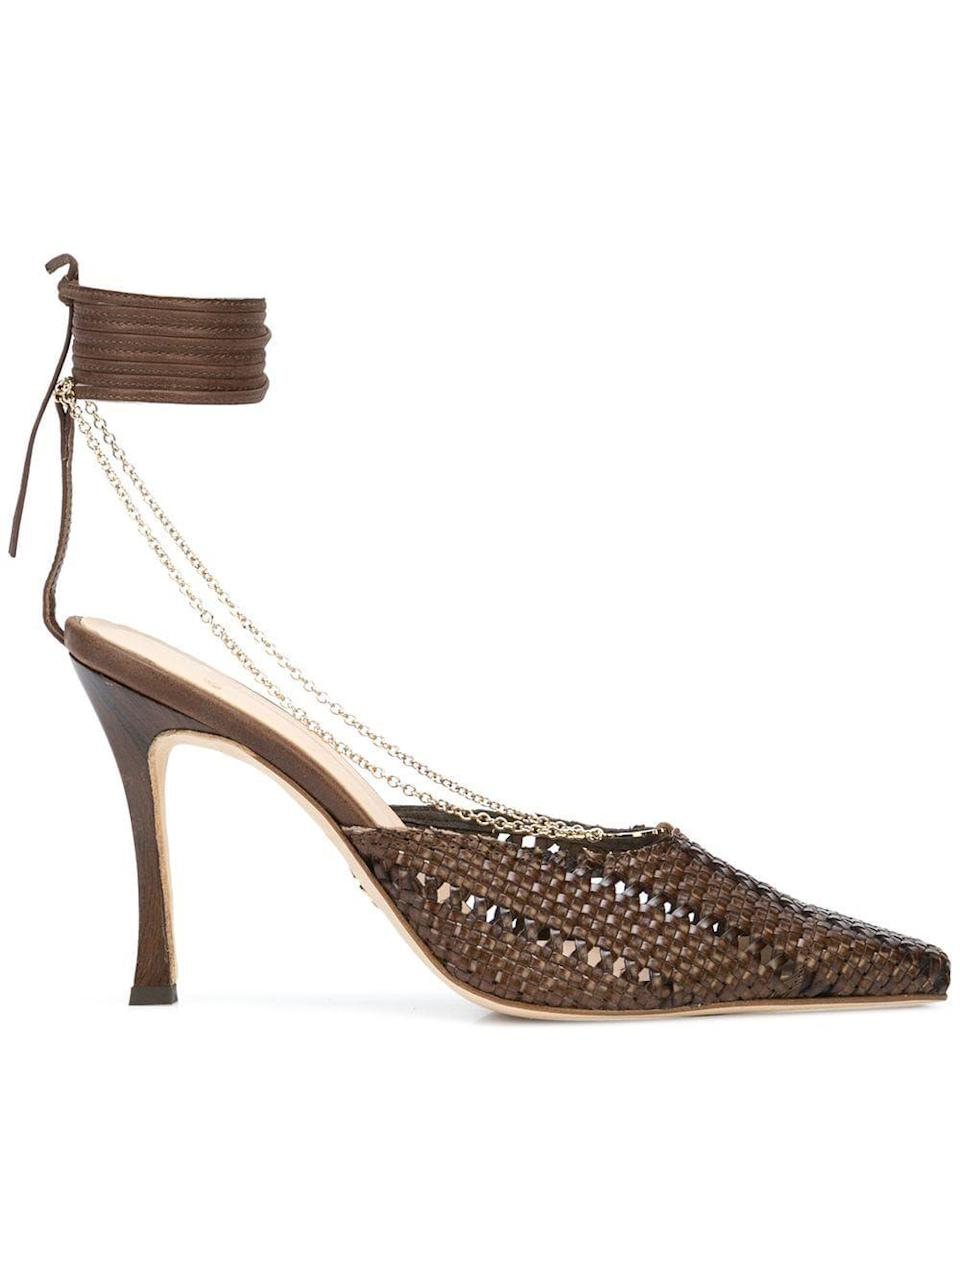 """<p><strong>Brother Vellies</strong></p><p>farfetch.com</p><p><strong>$795.00</strong></p><p><a href=""""https://go.redirectingat.com?id=74968X1596630&url=https%3A%2F%2Fwww.farfetch.com%2Fshopping%2Fwomen%2Fbrother-vellies-olivia-100mm-pumps-item-15337088.aspx&sref=https%3A%2F%2Fwww.cosmopolitan.com%2Fstyle-beauty%2Ffashion%2Fg35685829%2Fluxury-designer-sale-hauliday%2F"""" rel=""""nofollow noopener"""" target=""""_blank"""" data-ylk=""""slk:Shop Now"""" class=""""link rapid-noclick-resp"""">Shop Now</a></p>"""